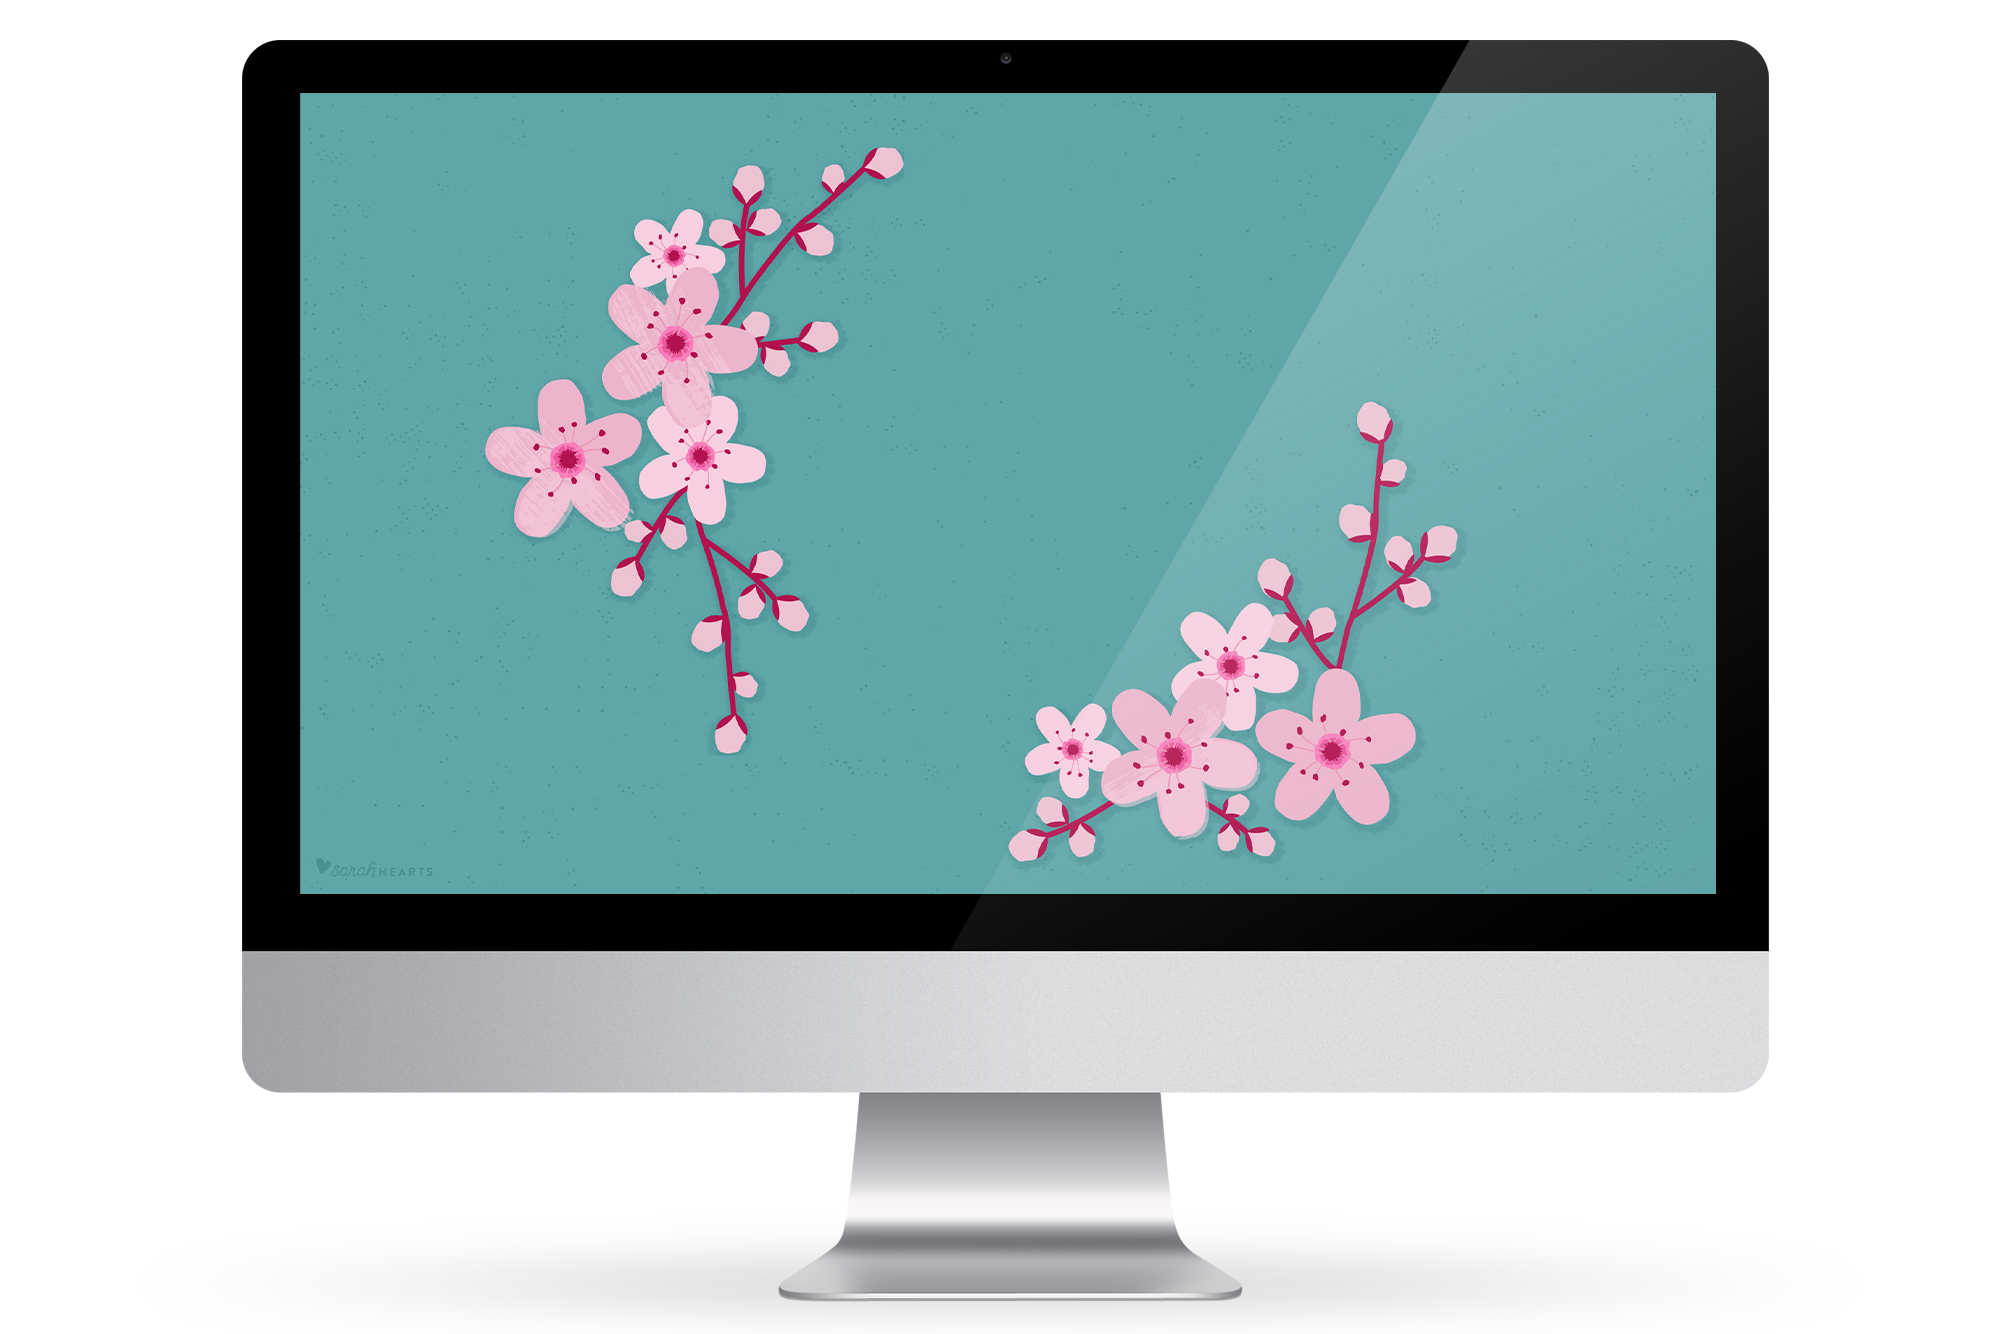 Add some beauty to your computer, phone or tablet with this free cherry blossom wallpaper!